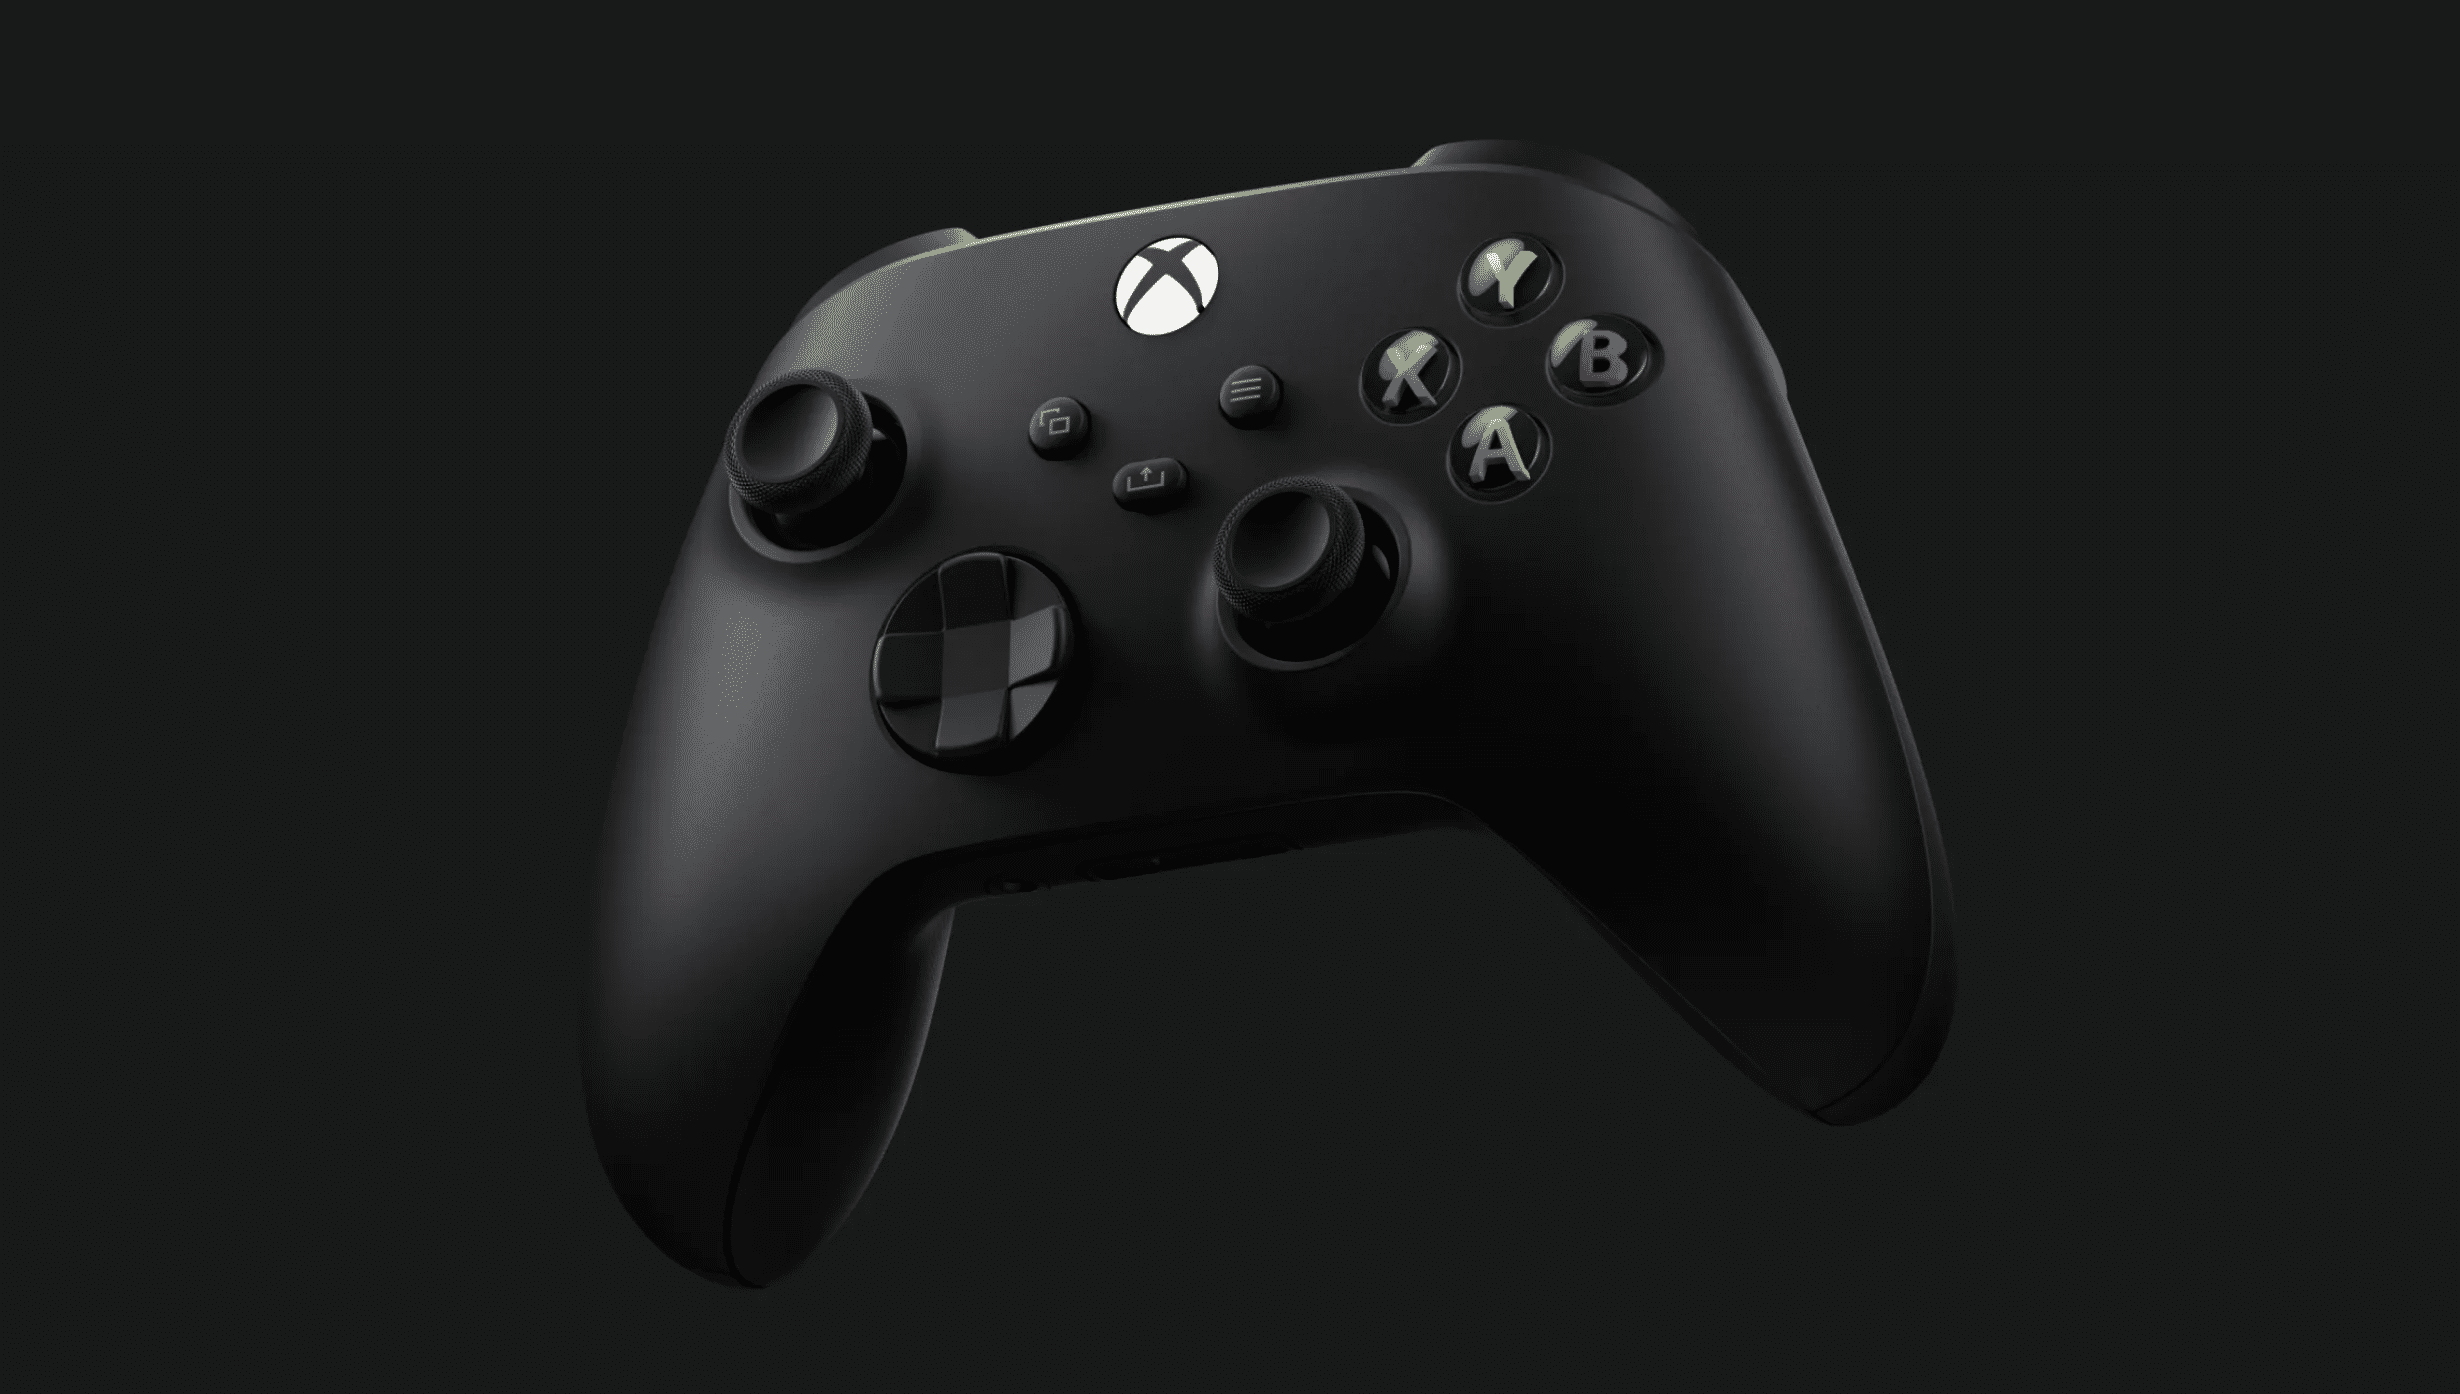 Apple devices to get Xbox series X Gamepad support